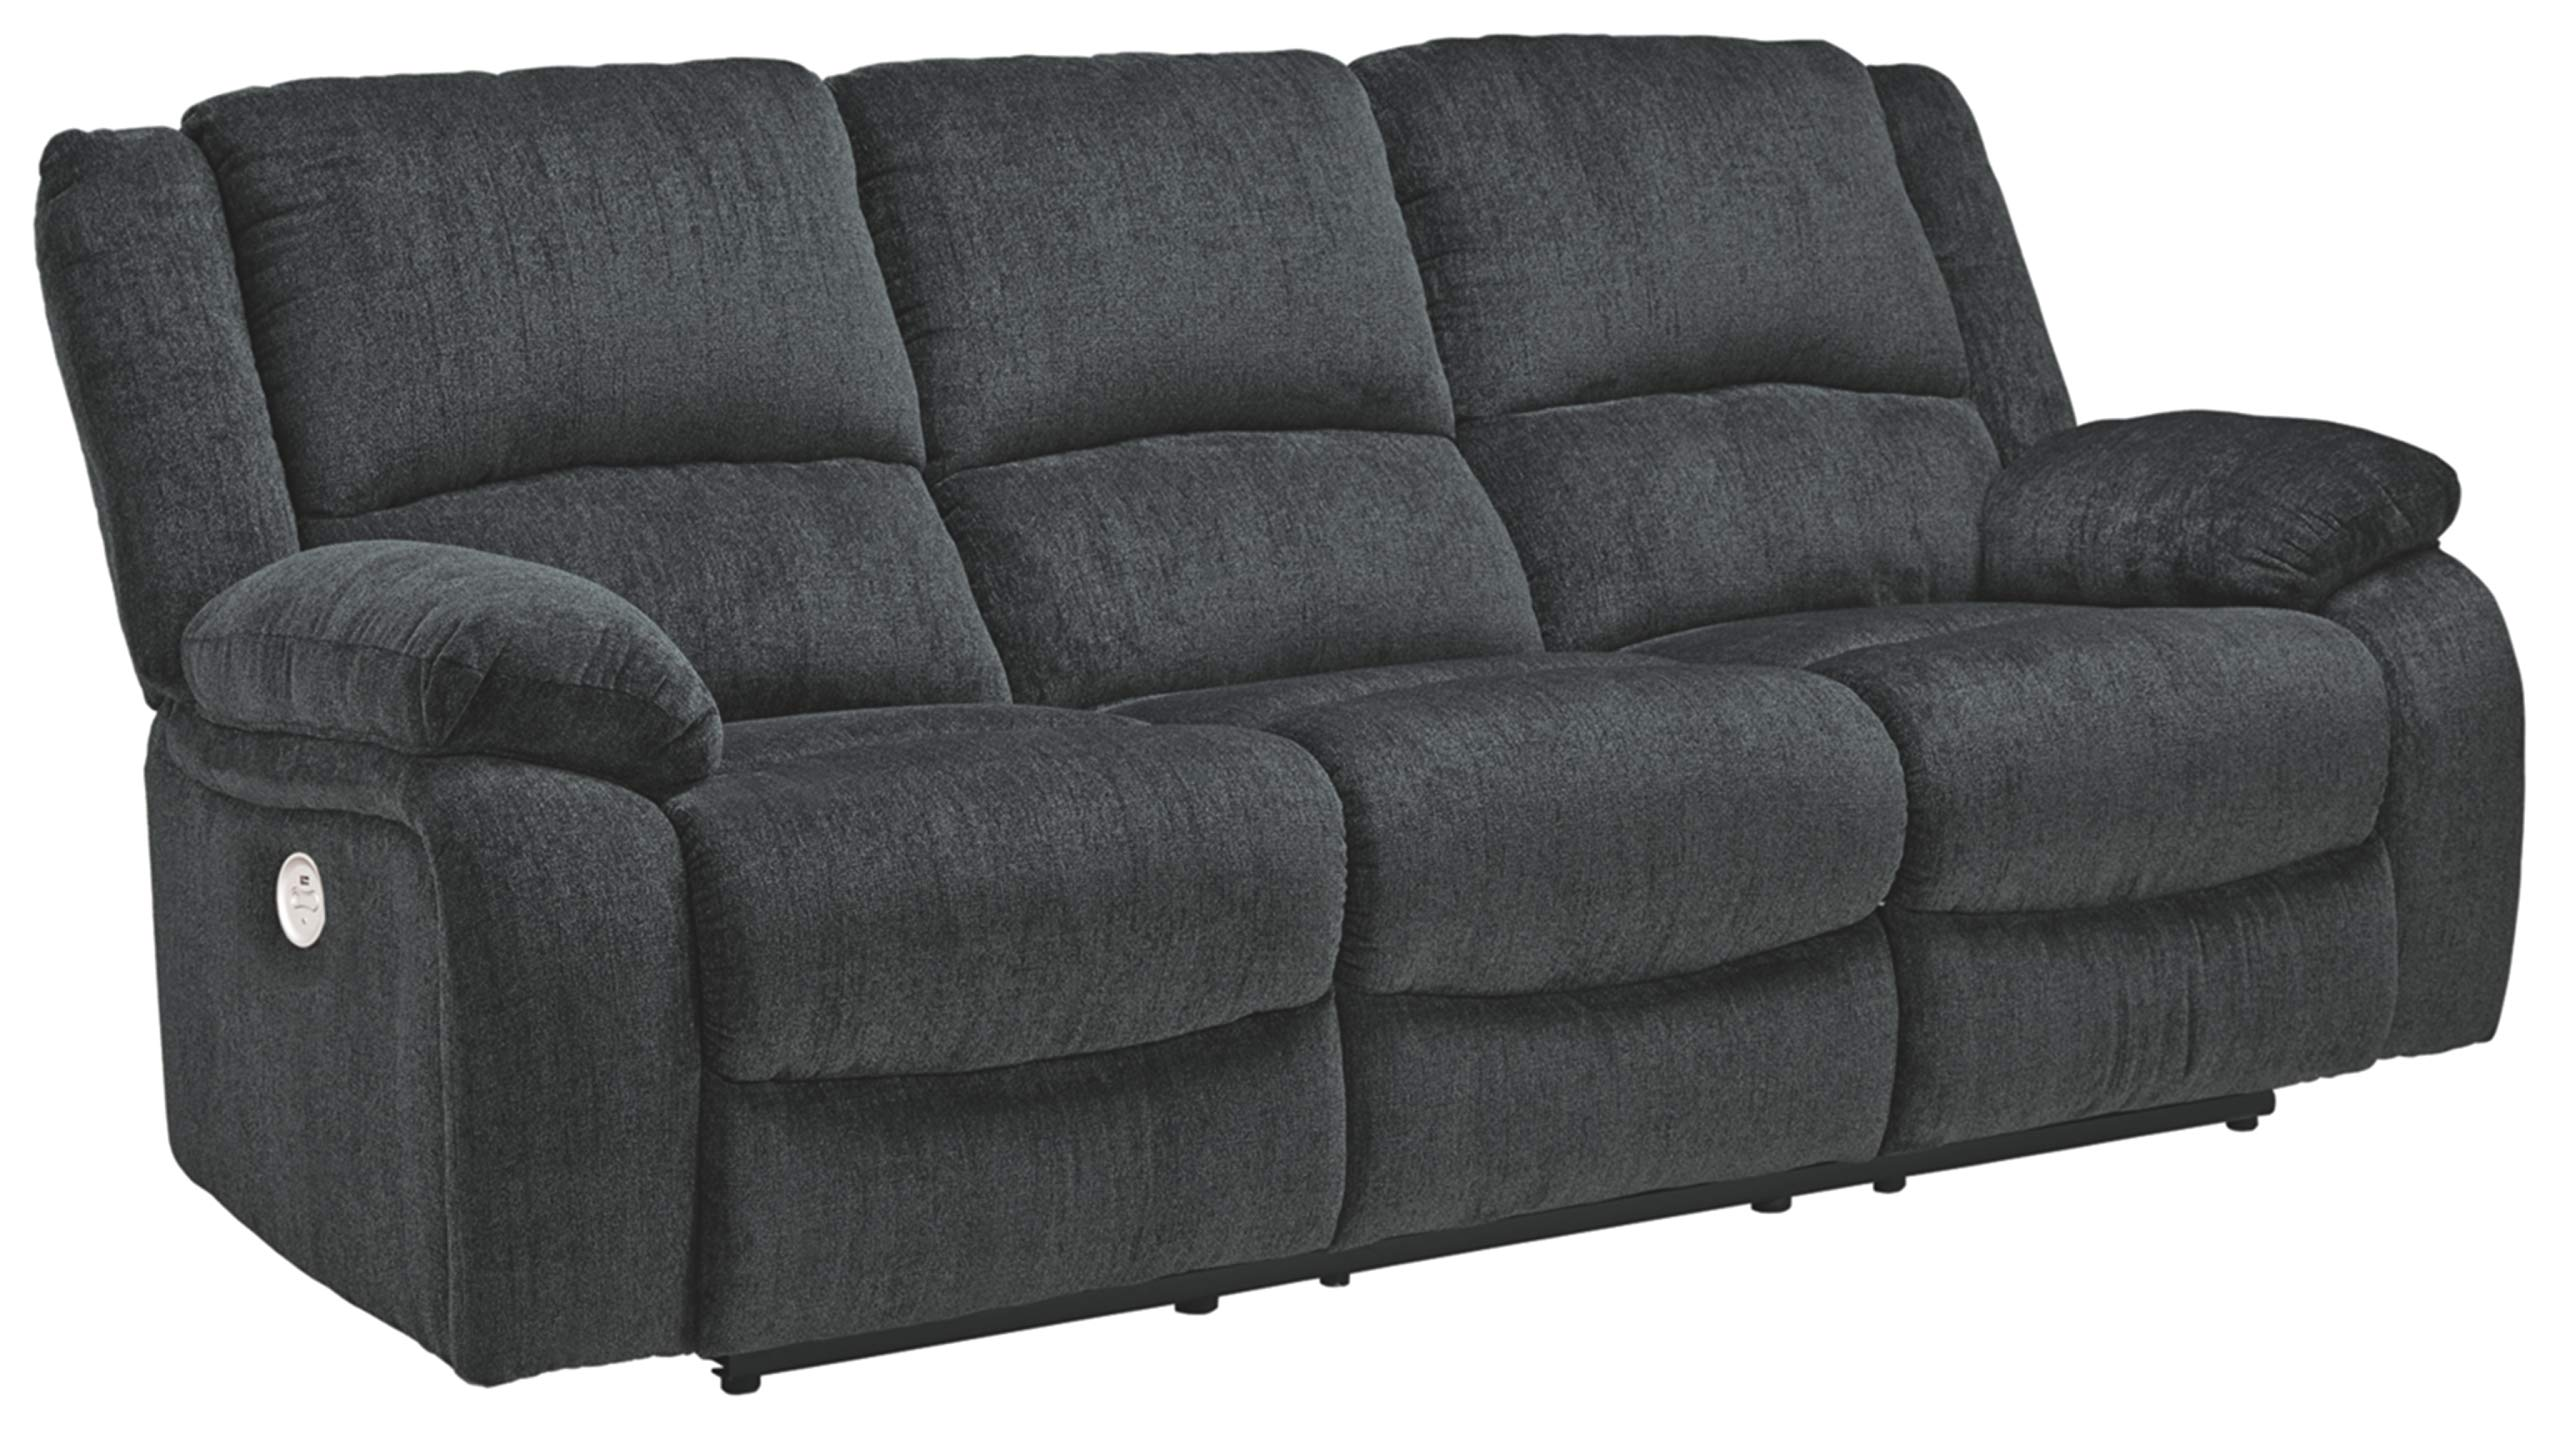 Signature Design by Ashley - Draycoll Contemporary Upholstered Reclining Power Sofa - Adjustable - Dark Gray